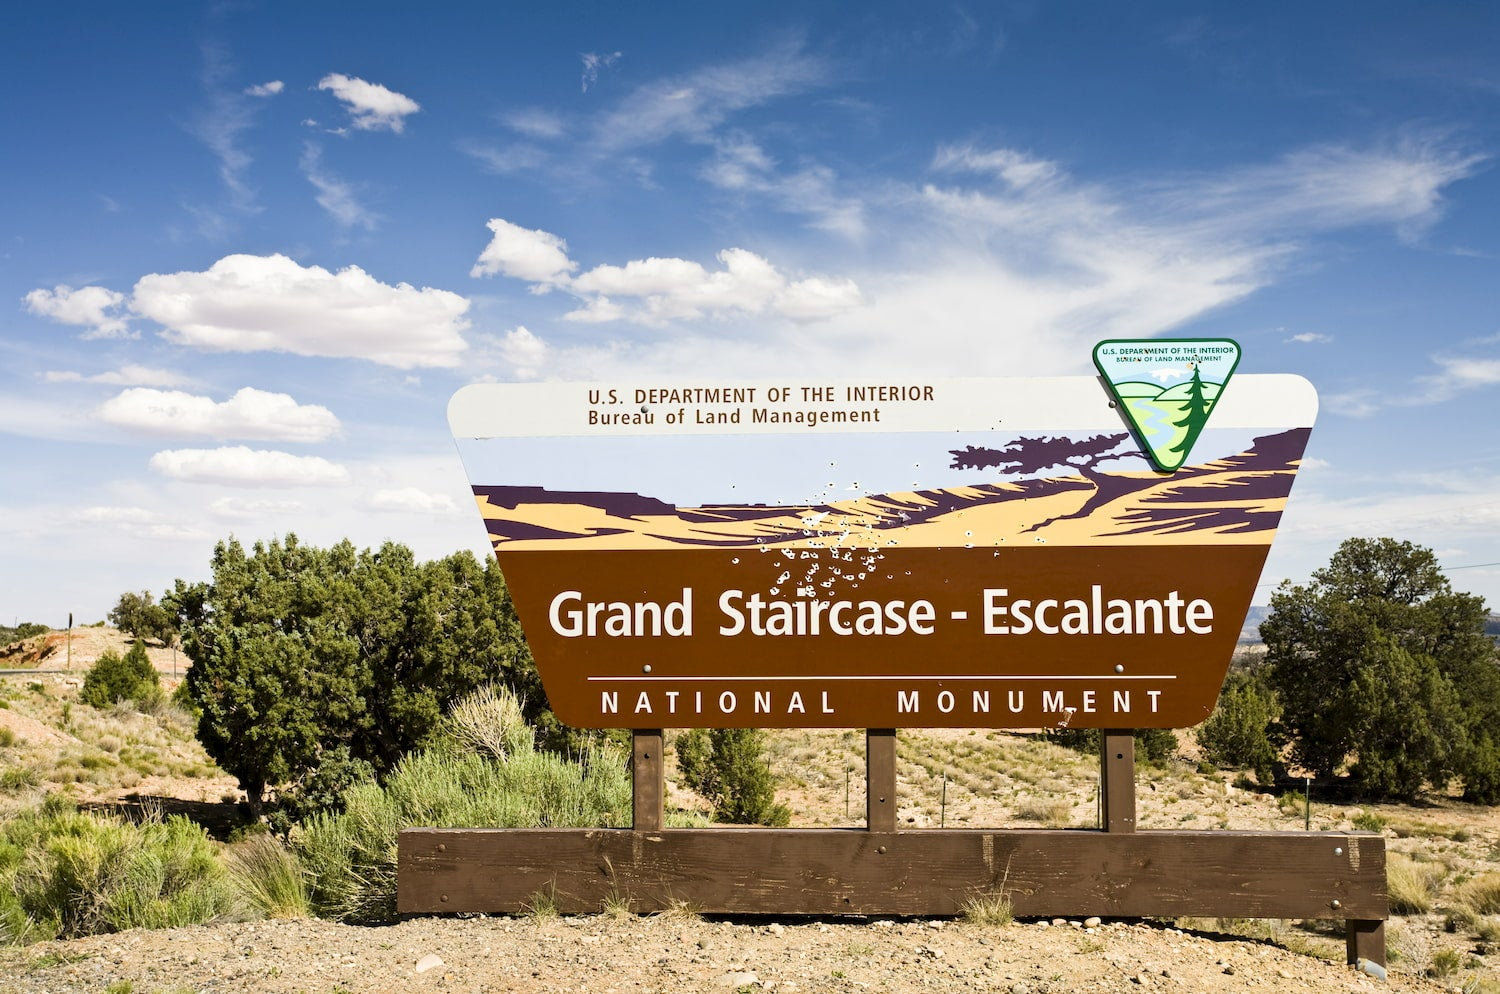 Sign of the Grand Staircase-Escalante National Monument, Escalante, Utah, United States